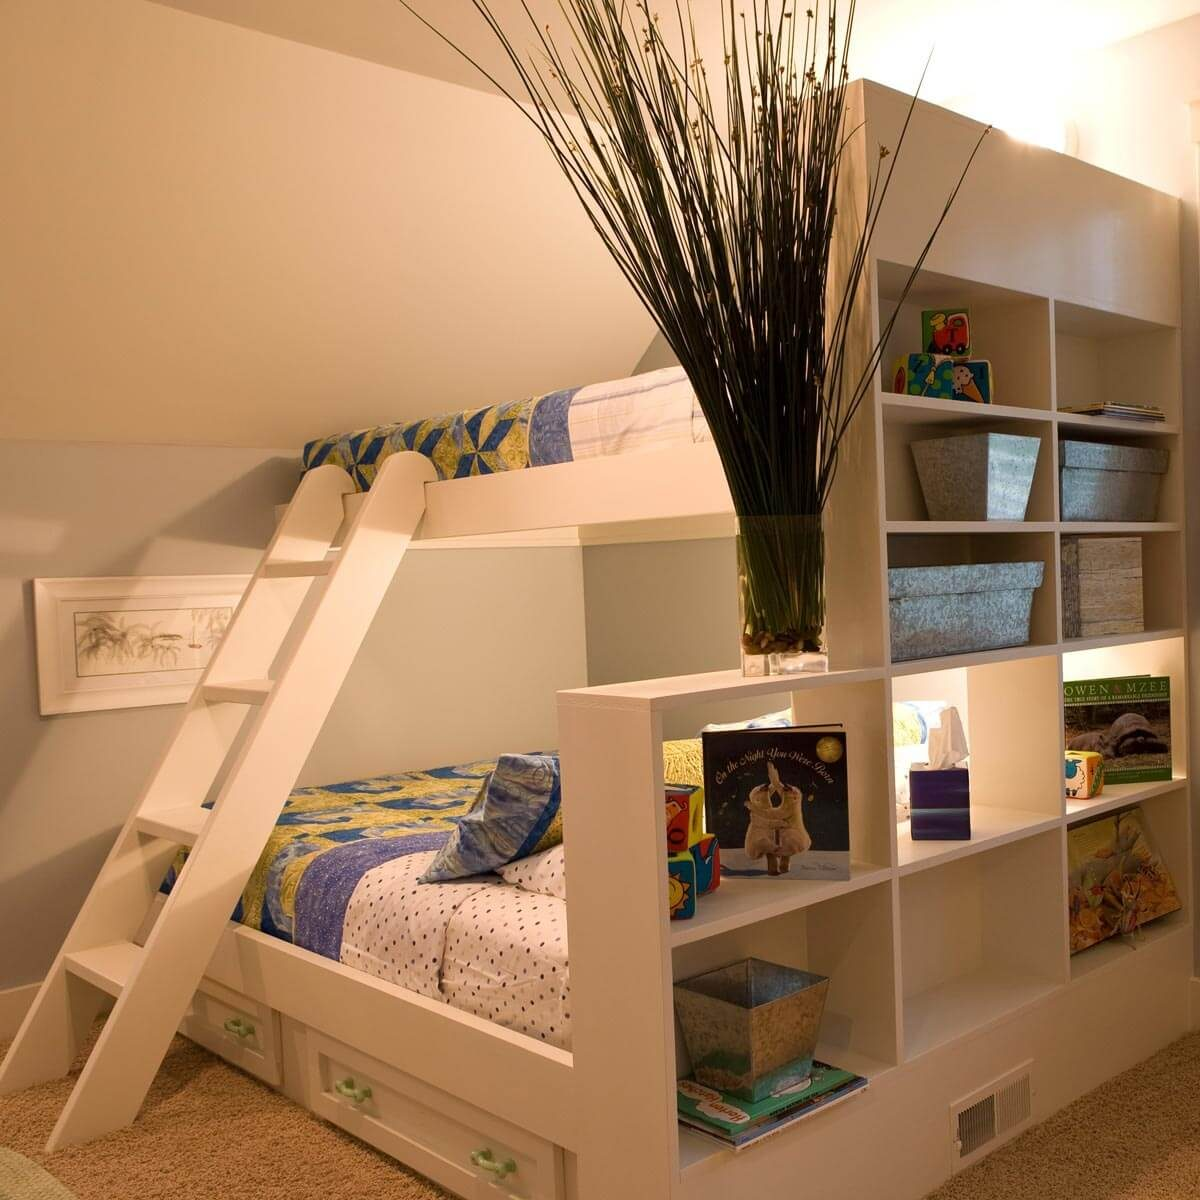 Bunk Beds With Shelves Storage Rollouts